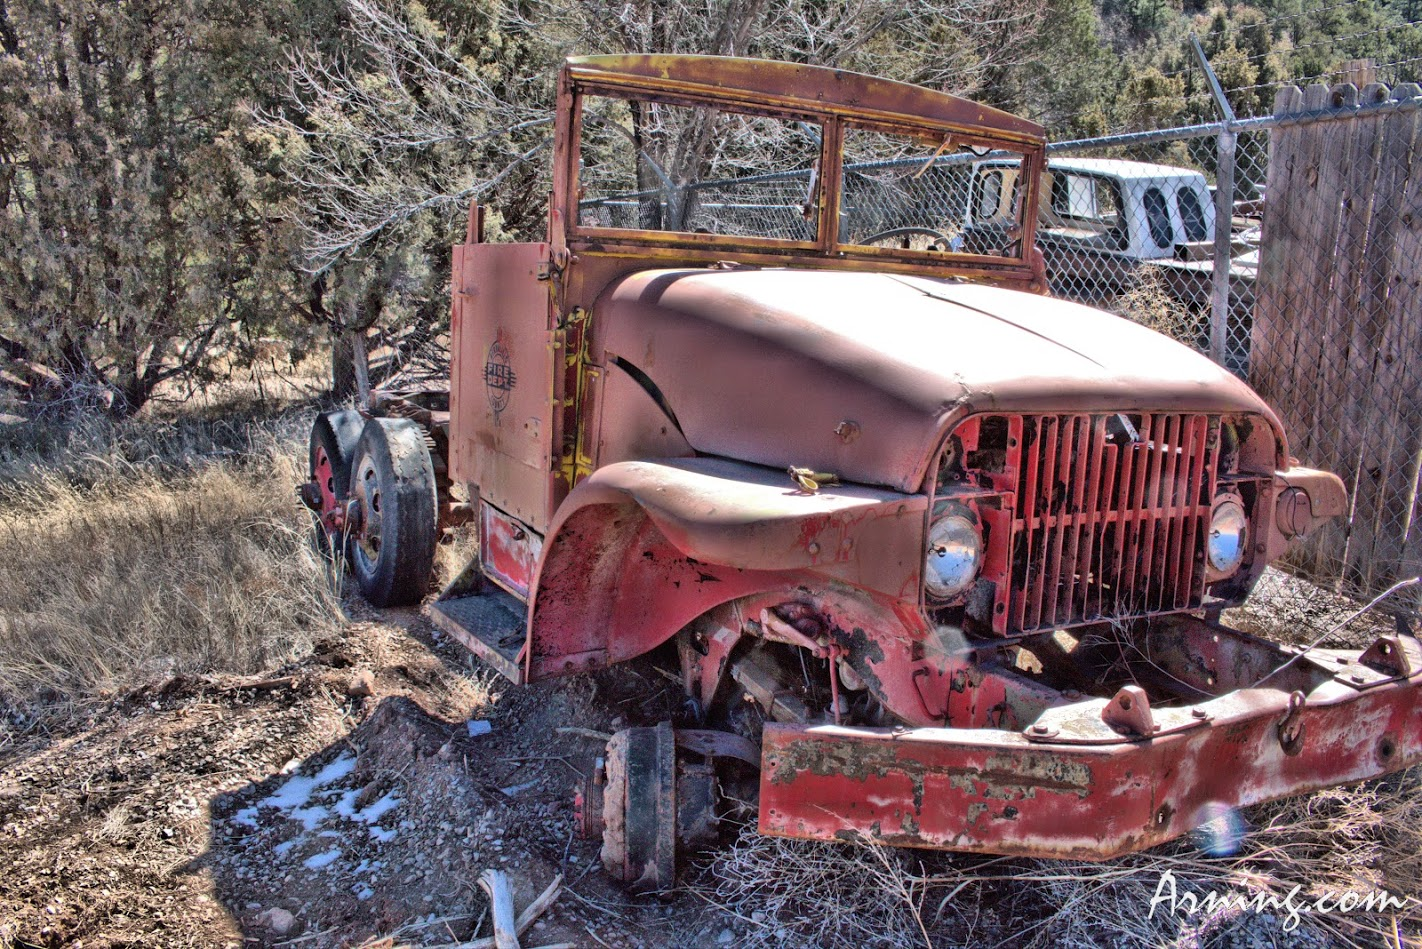 Old firetruck in Cedar Crest off NM 14